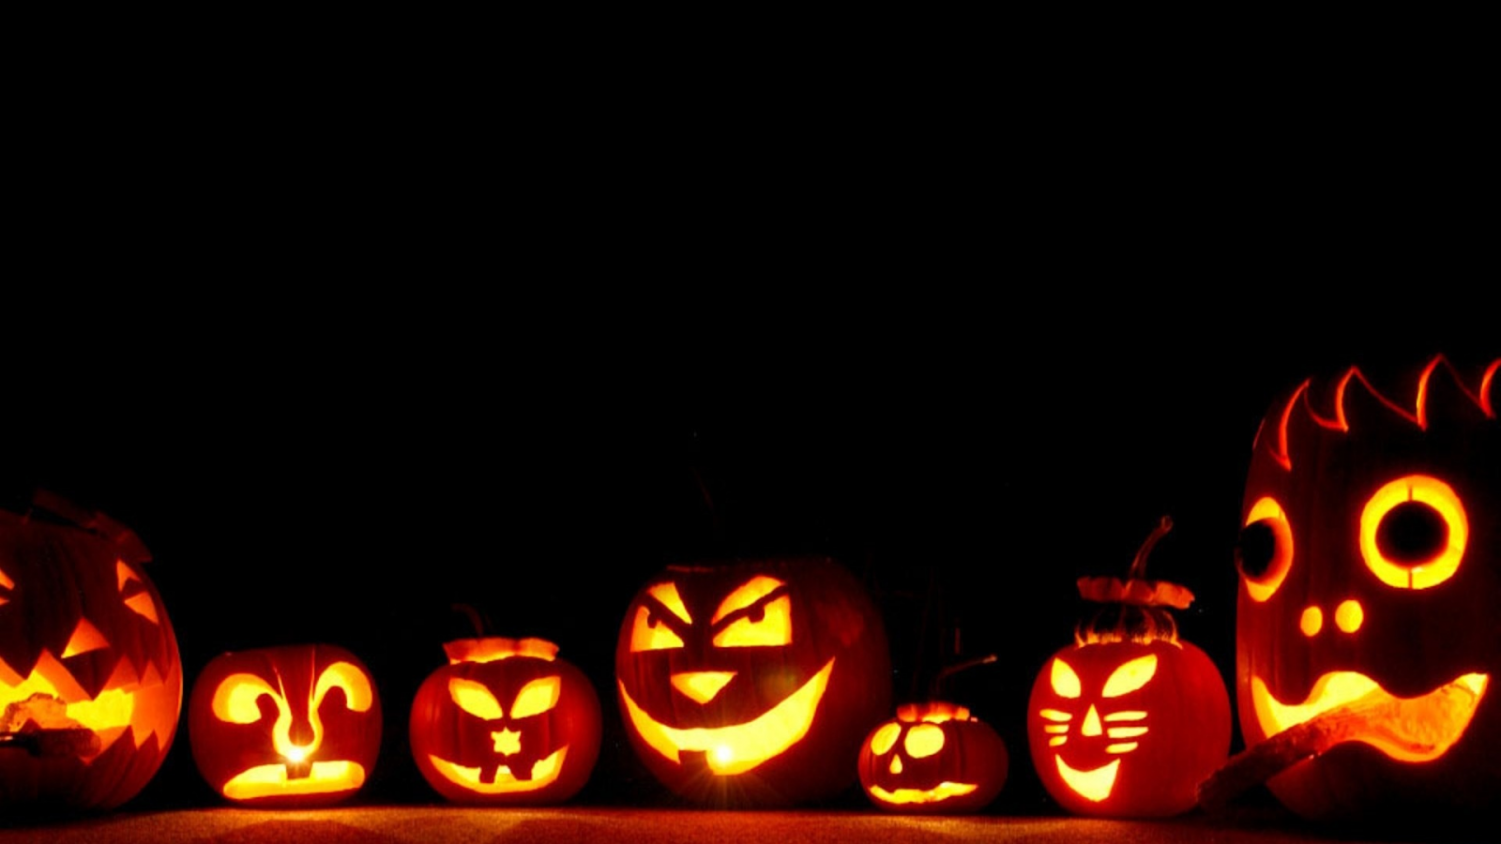 Eugene's pumpkins that sit outside his house waiting for trick-or-treaters.